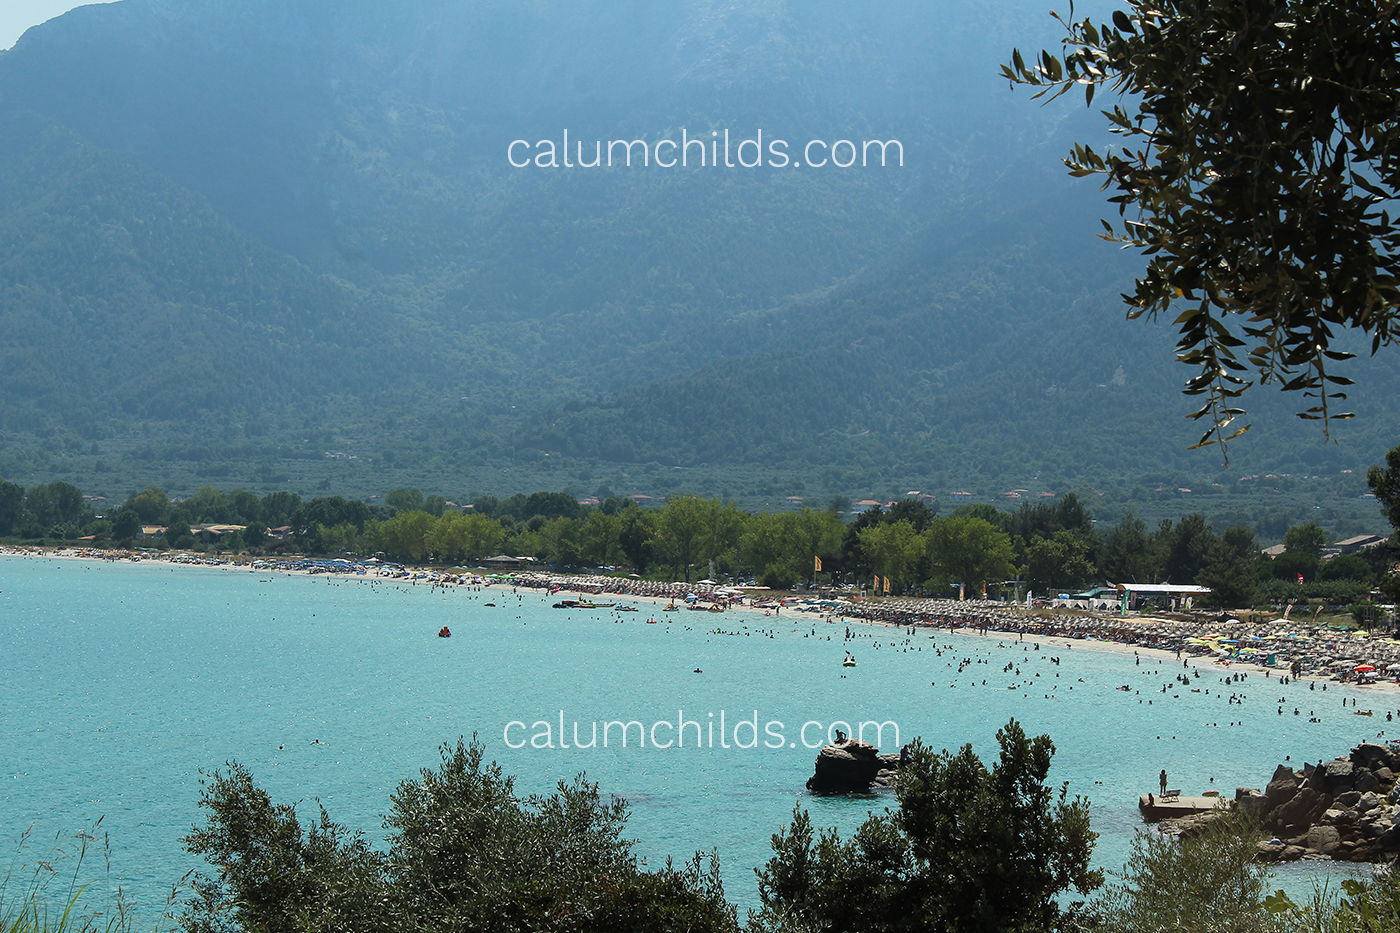 Turquoise waters engulf a beautiful beach.